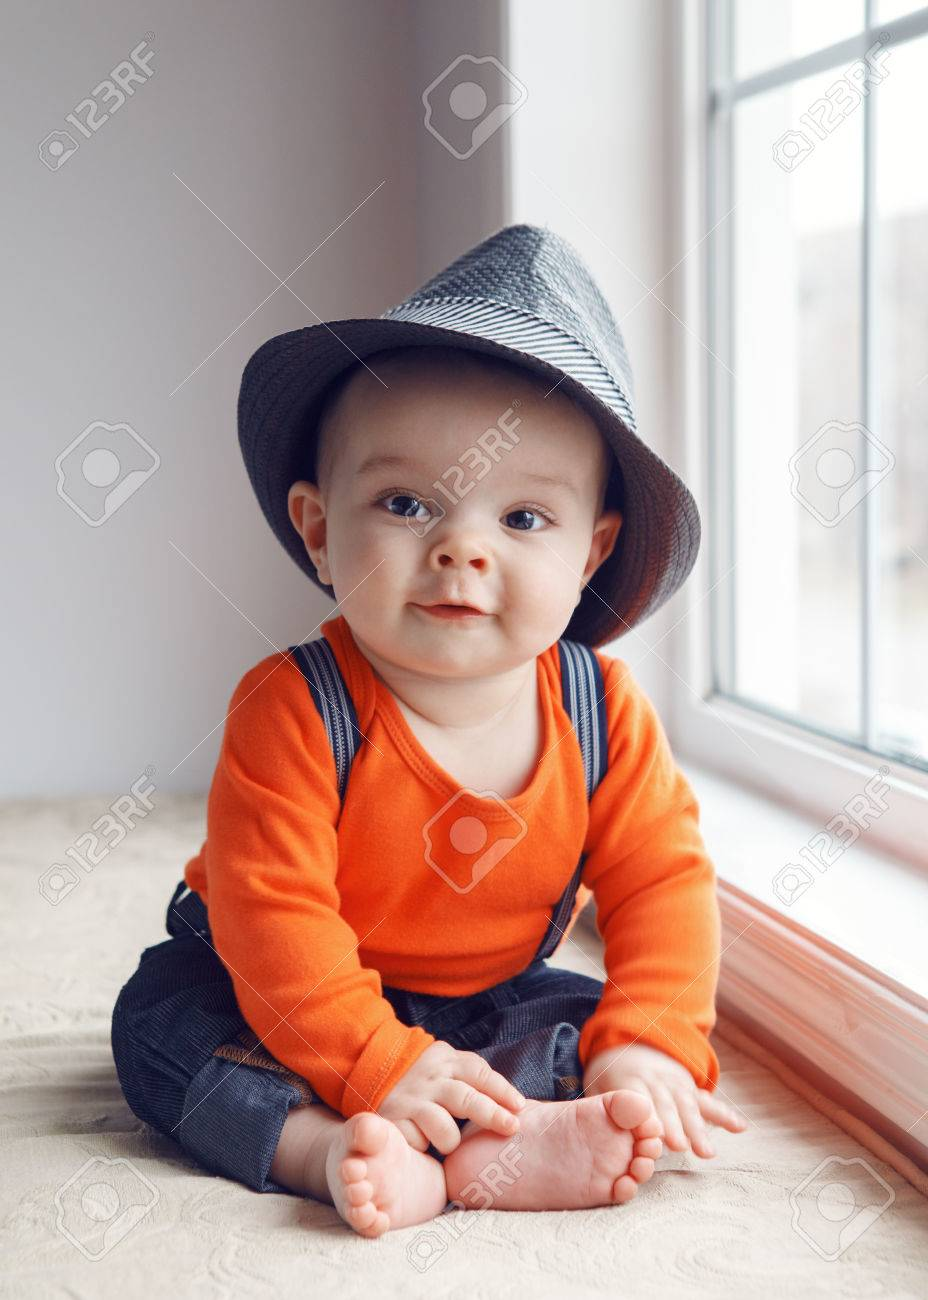 e210844c3e13 Portrait of cute adorable stylish Caucasian baby boy with black eyes in  hat